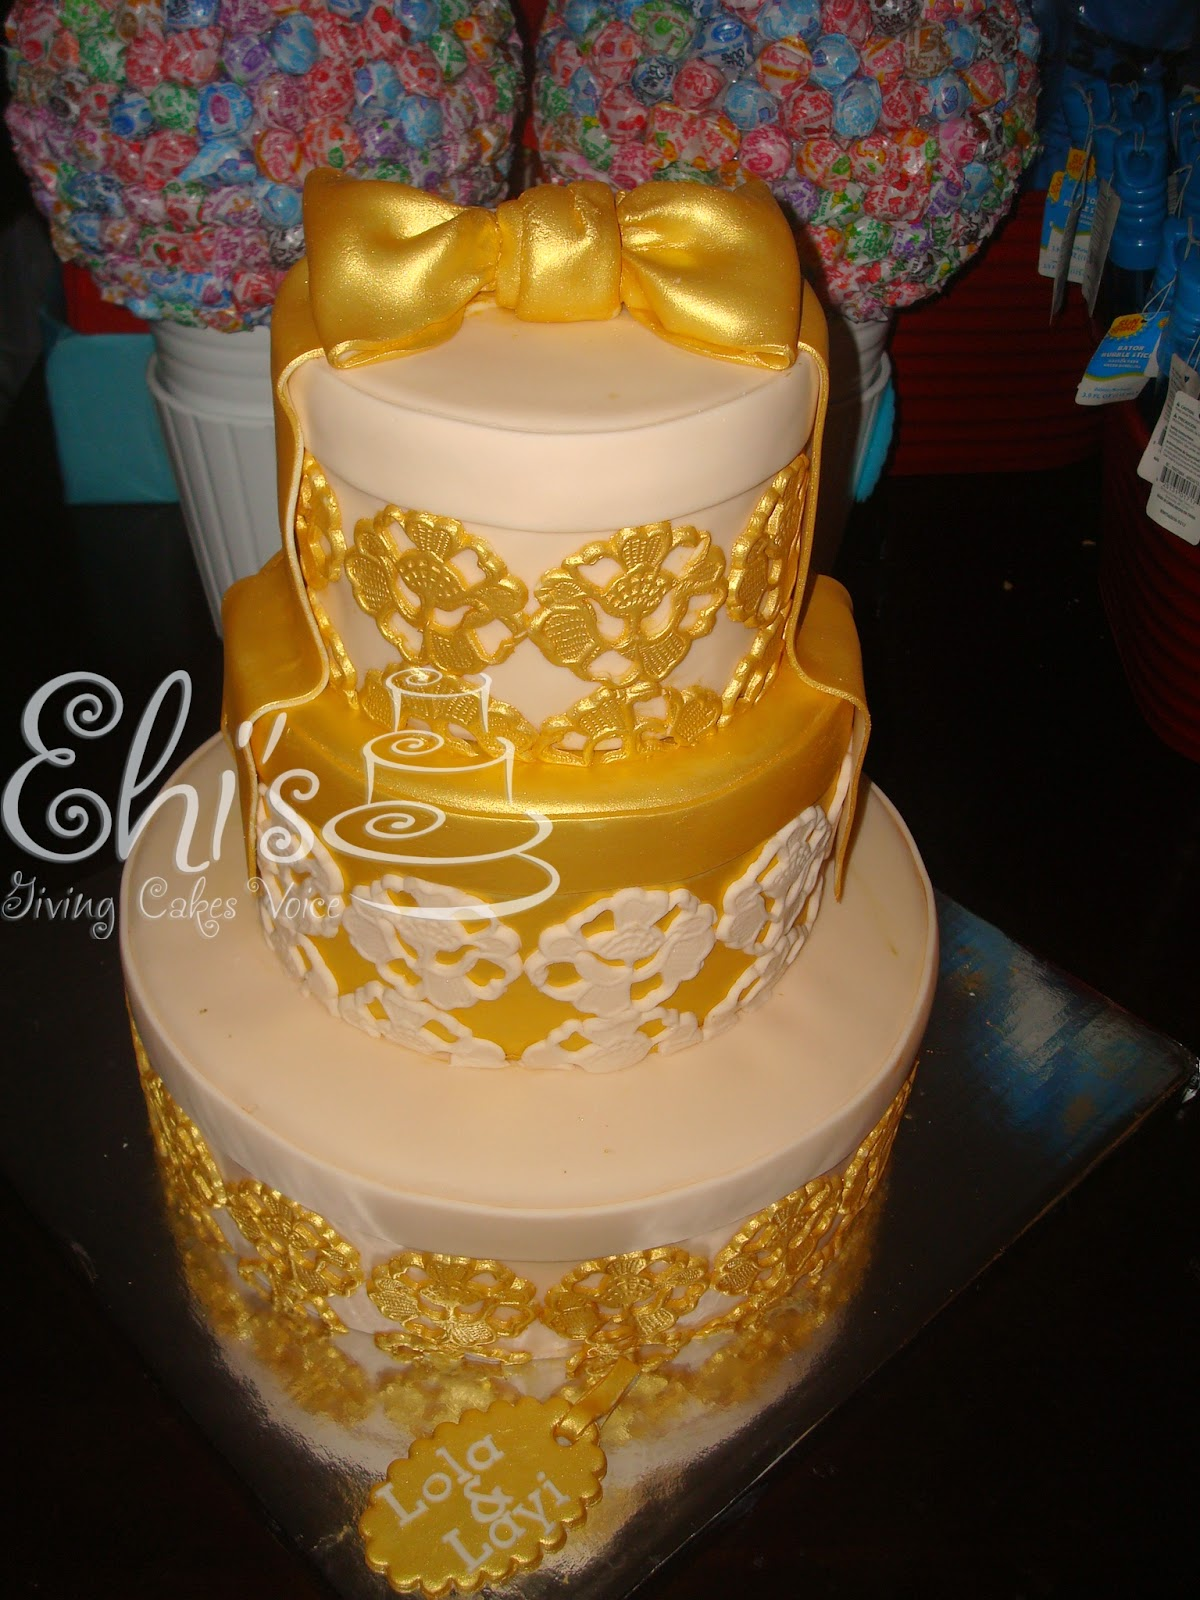 Ehi s Sweet Talks 2014 WEDDING CAKES TREND